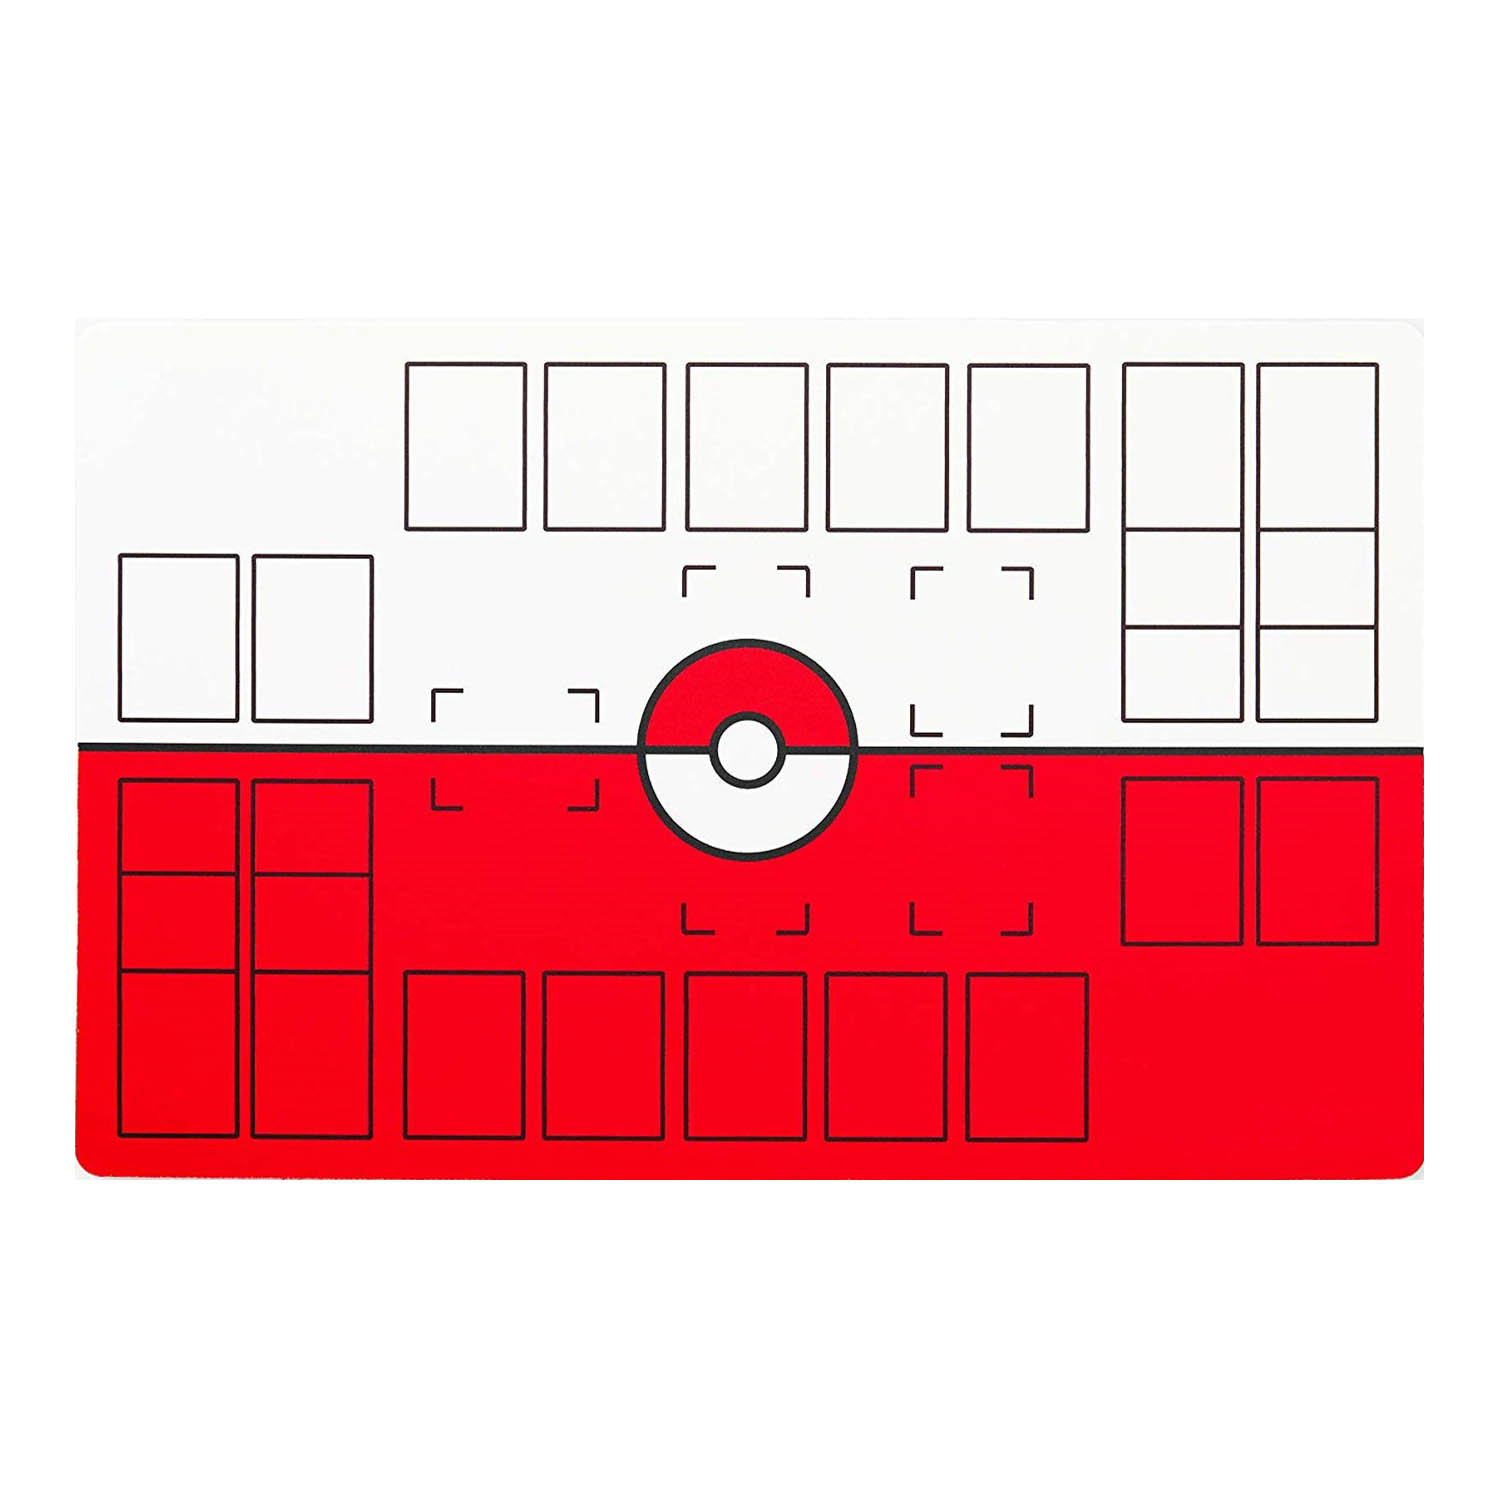 Deluxe 2 Player Compatible Pokemon Stadium Mat Board Trading Cards Game Playmat 71*45cm Children Christmas Gift